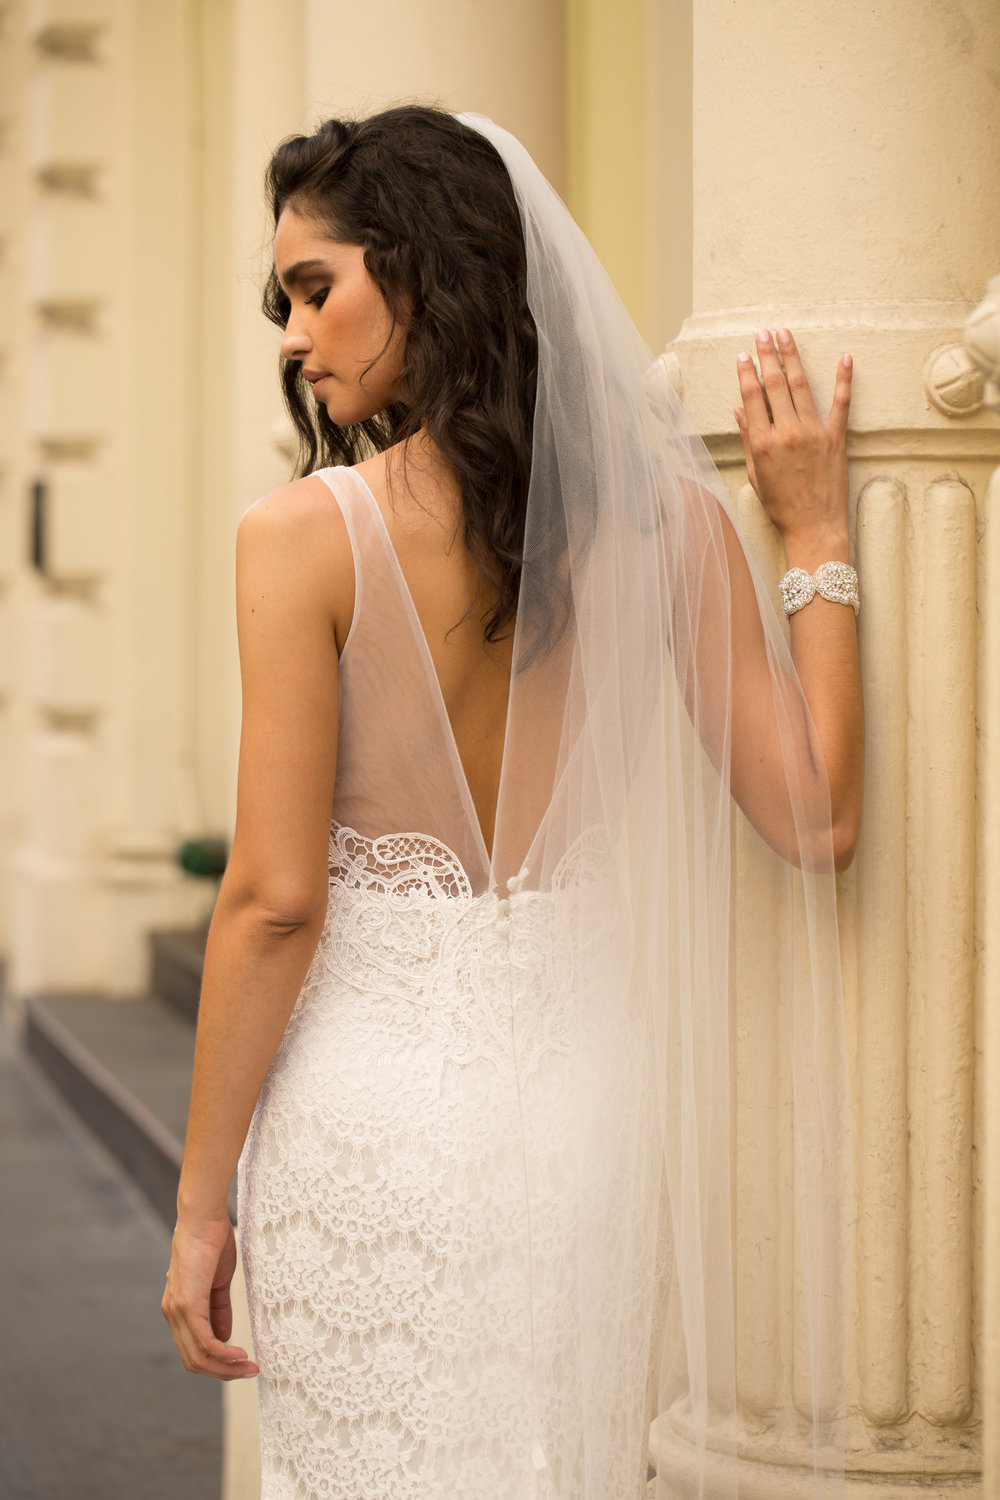 Saasha Dress (Non-Embellished) - Understated romantic details, such as a soft ivory lace and sheer tulle shoulder and back details, make this non-embellished Saasha dress the perfect option for a modern Anna Campbell bride.  Styled with the Zara Chapel Length Veil.